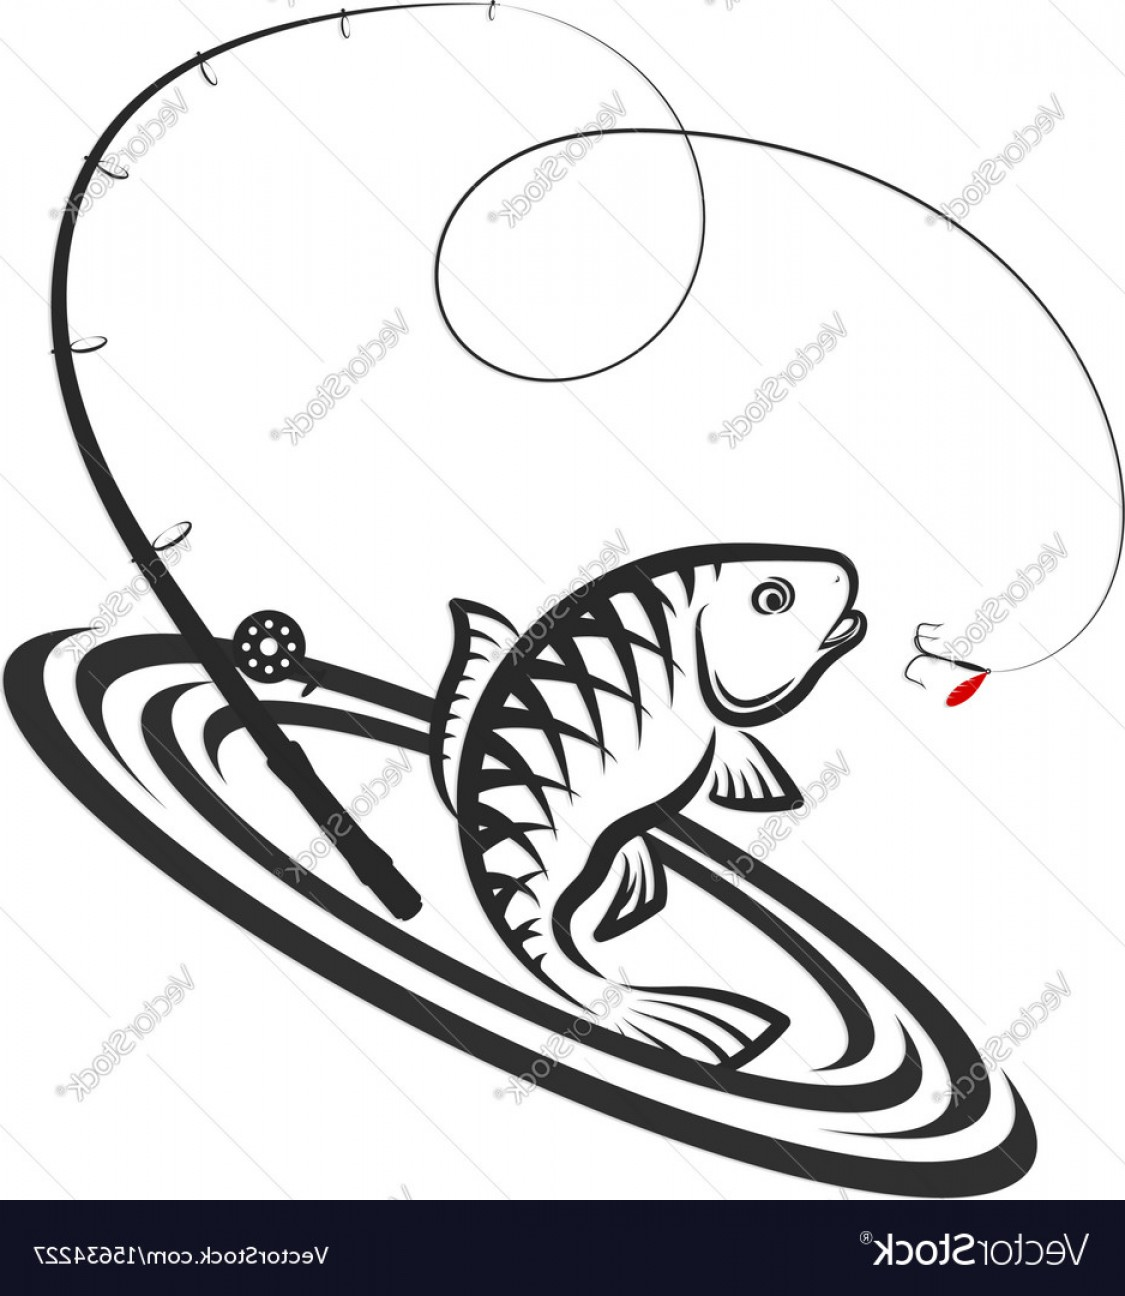 Fishing Pole Silhouette Vector: Fish And Fishing Rod Jumping Silhouette Vector